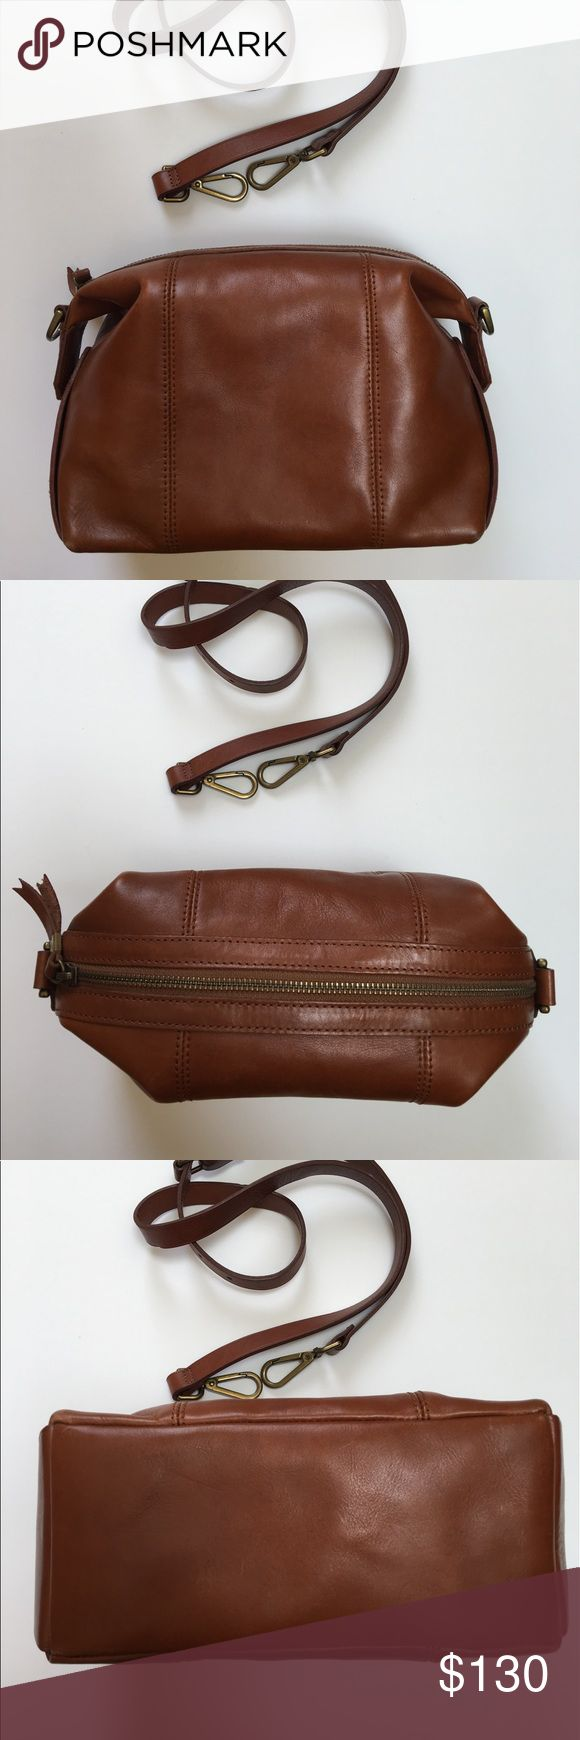 Madewell Mini Glasgow in English Saddle For sale is the Madewell Mini Glasgow in English Saddle. Great bag, I just don't use it! Leather is in immaculate condition. Inside is a little dirty - please see pictures. Still has that new leather smell! Madewell Bags Crossbody Bags